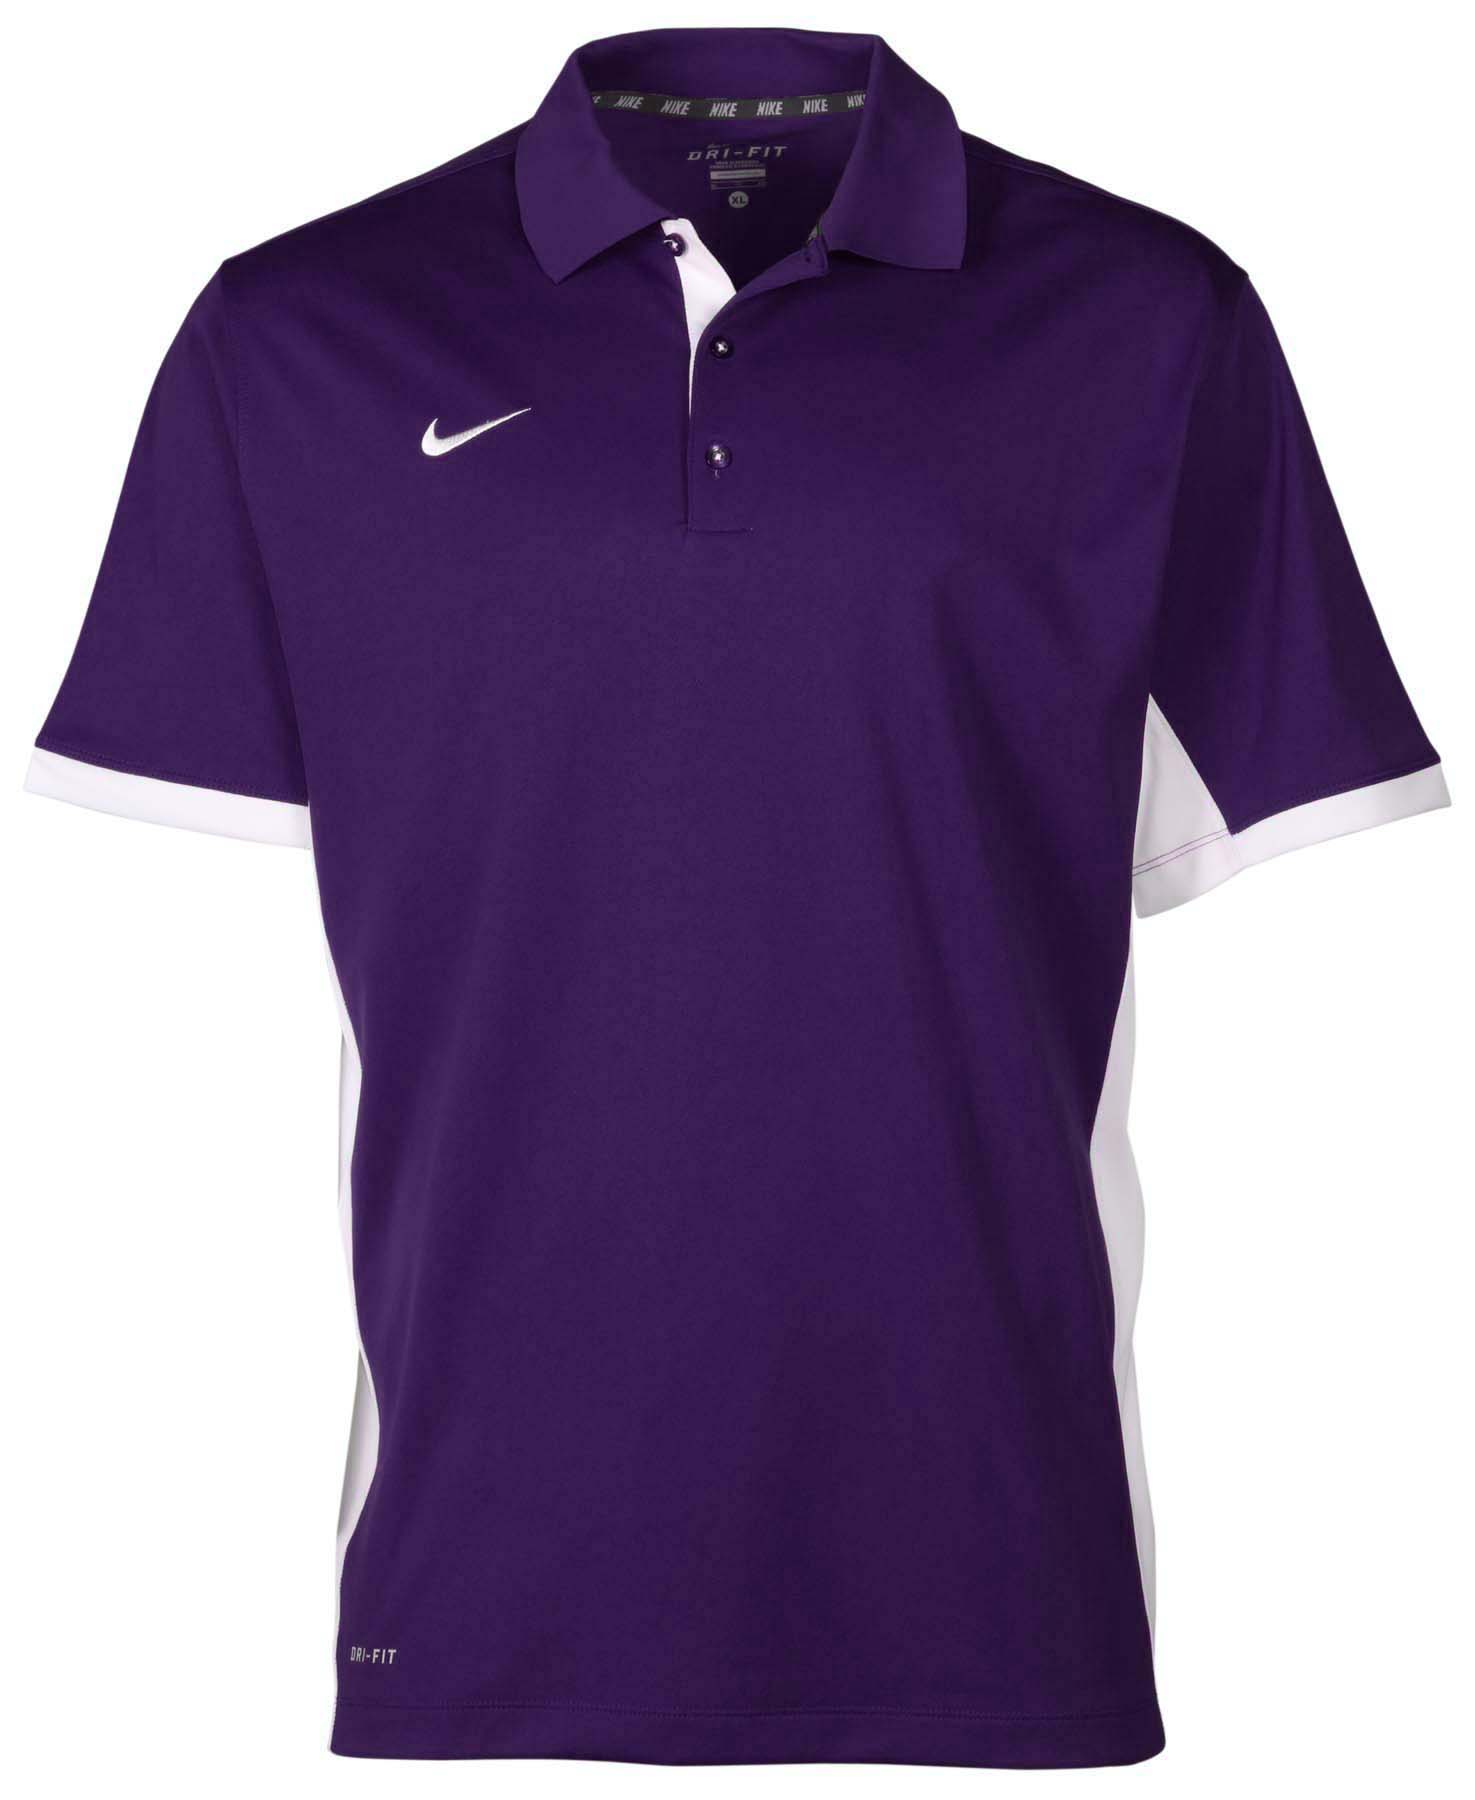 nike men 39 s dri fit performance sideline polo shirt ebay